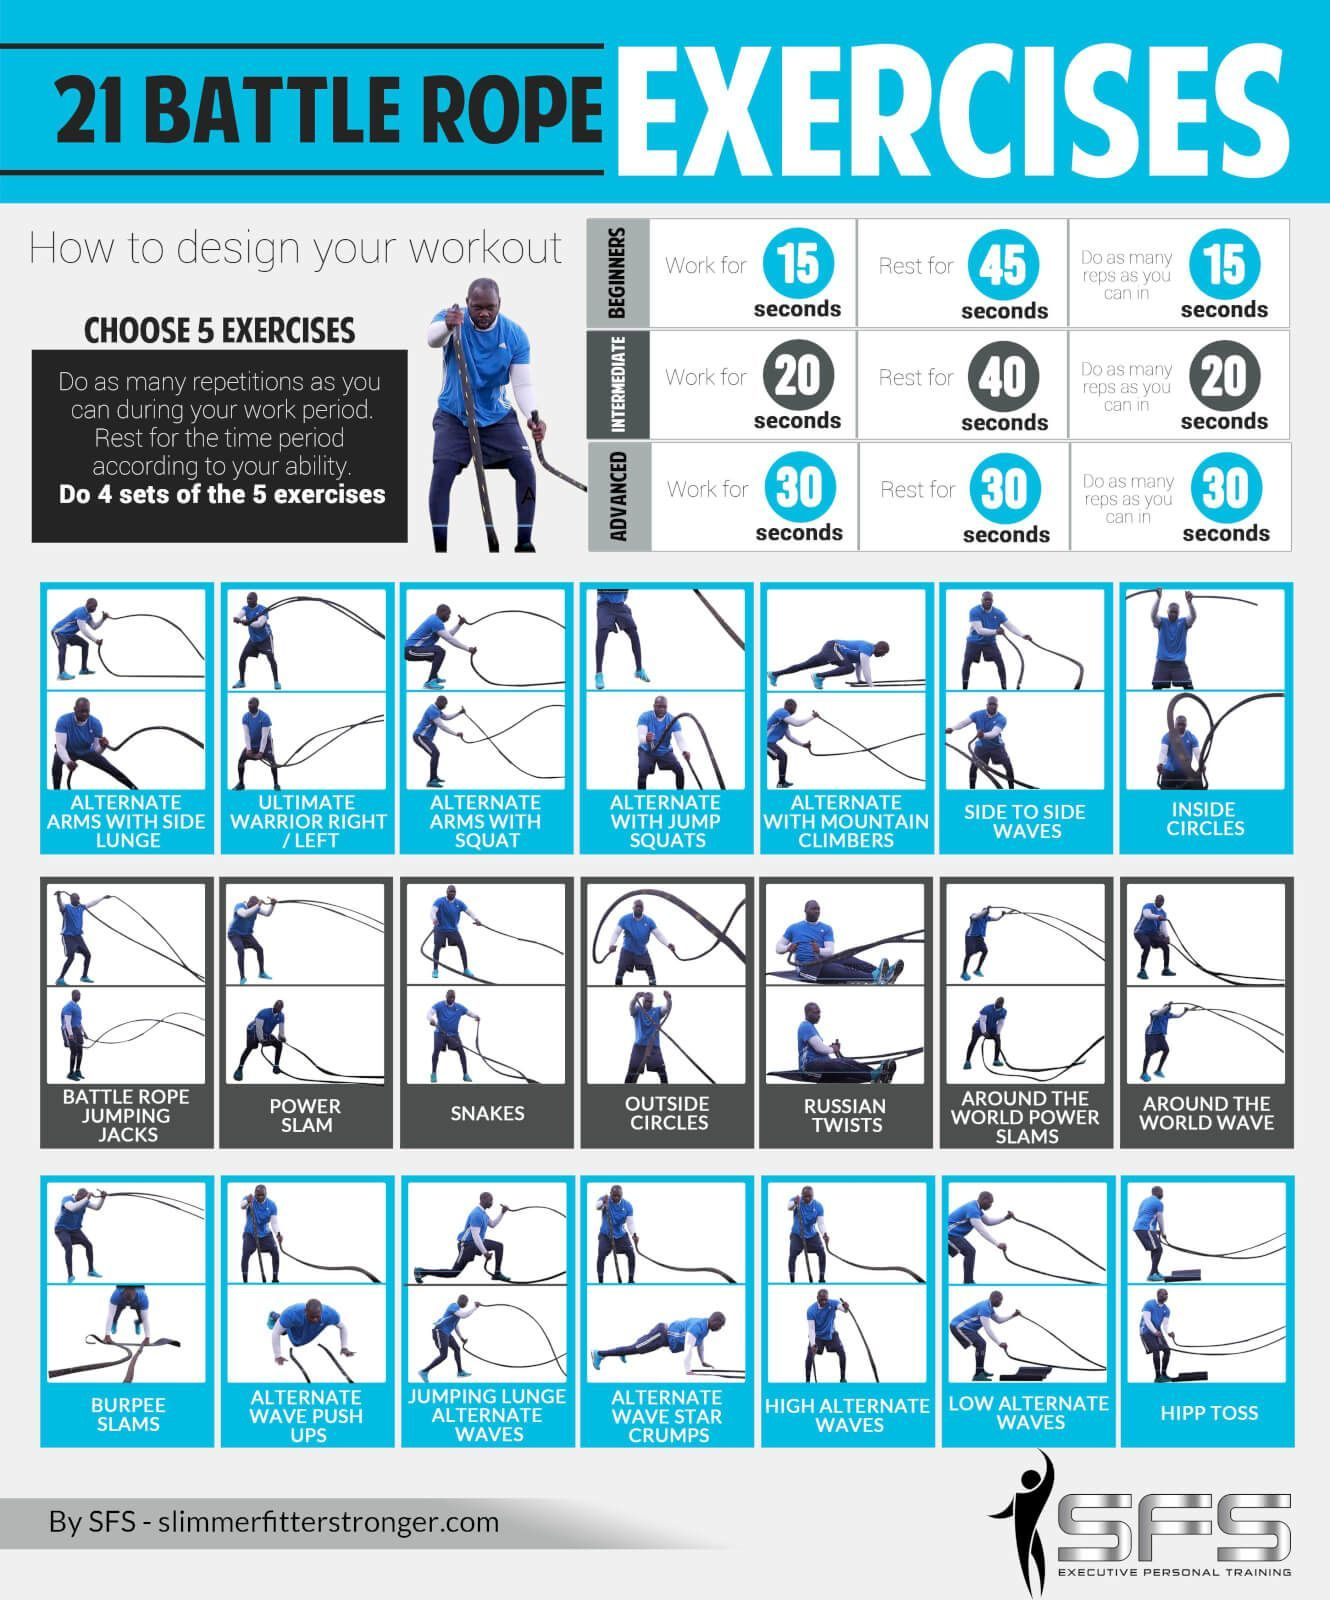 21 Battling Ropes Exercises For Your Battling Ropes Workout You Can Use This Infographic To Learn Battle Rope Exerc Rope Exercises Battle Ropes Hiit Workout